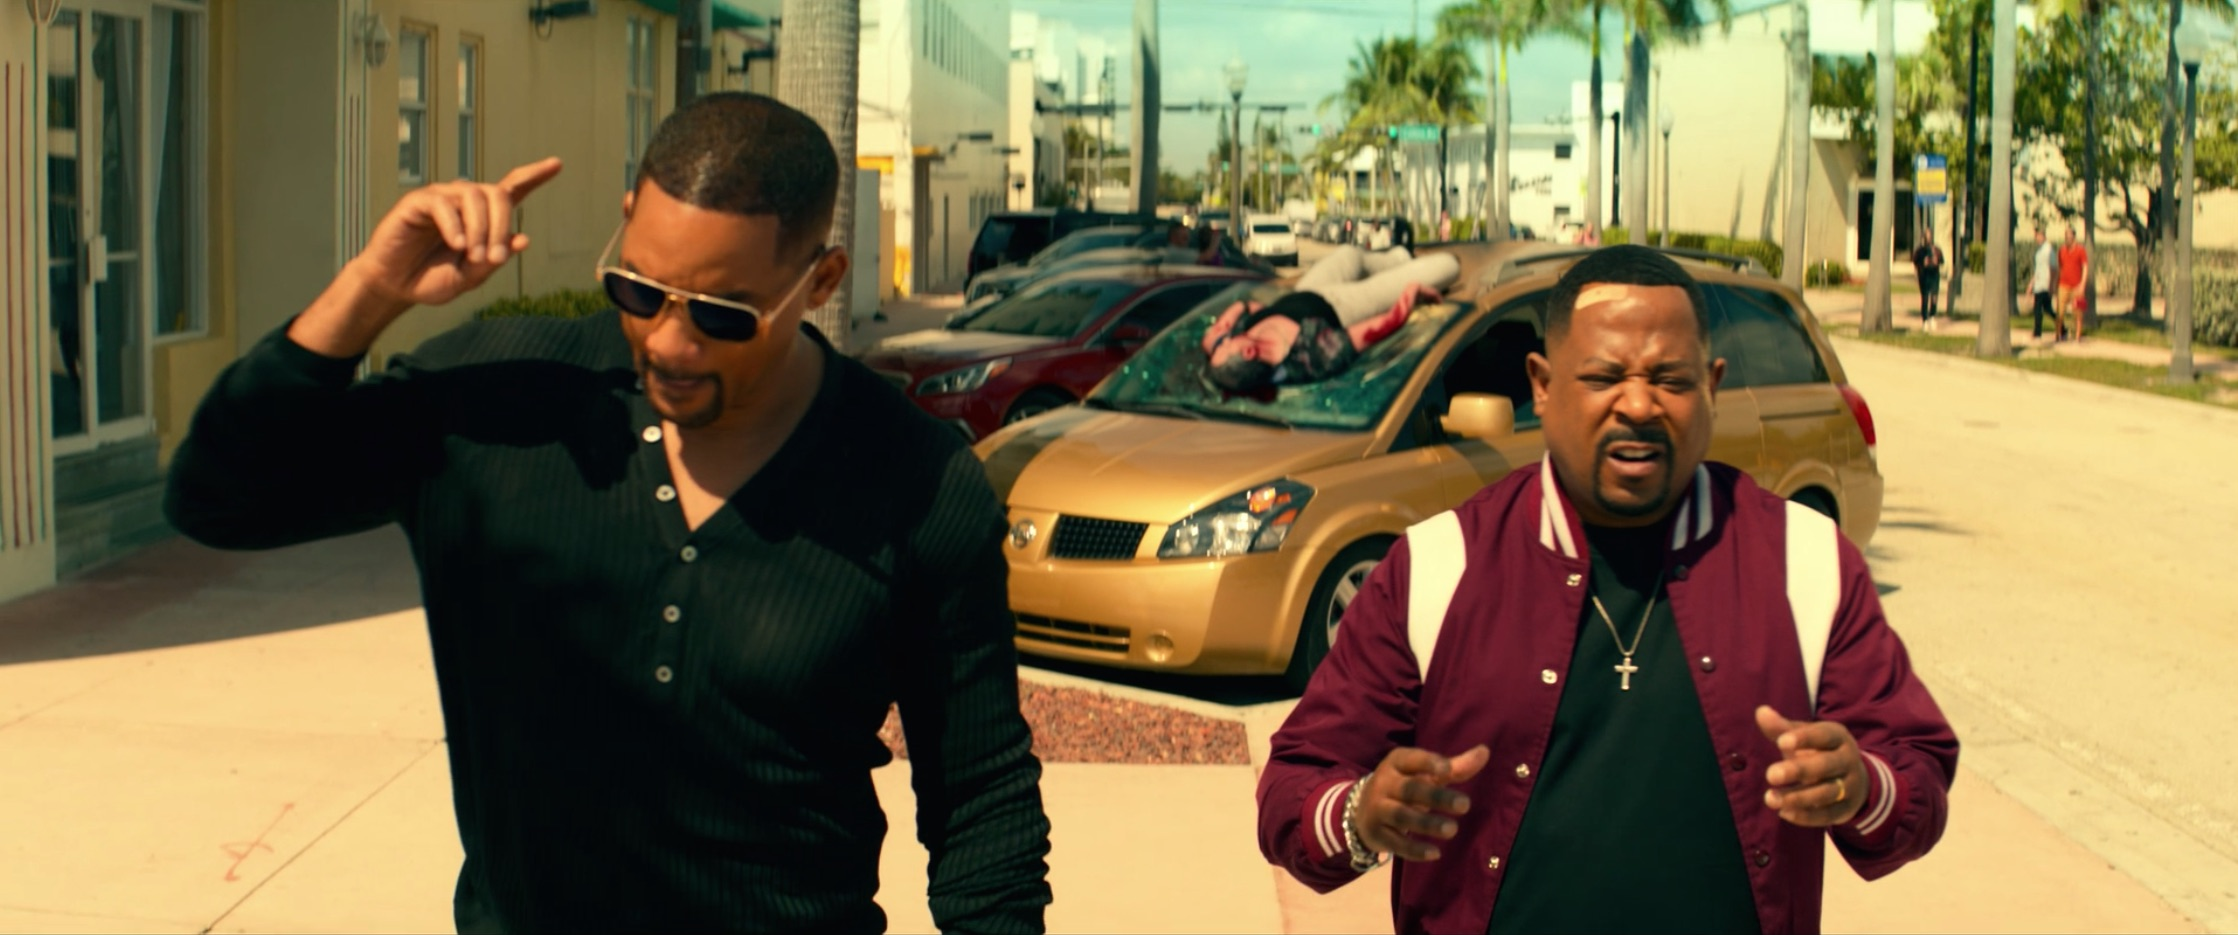 Bad Boys For Life will smith and martin lawrence arguing